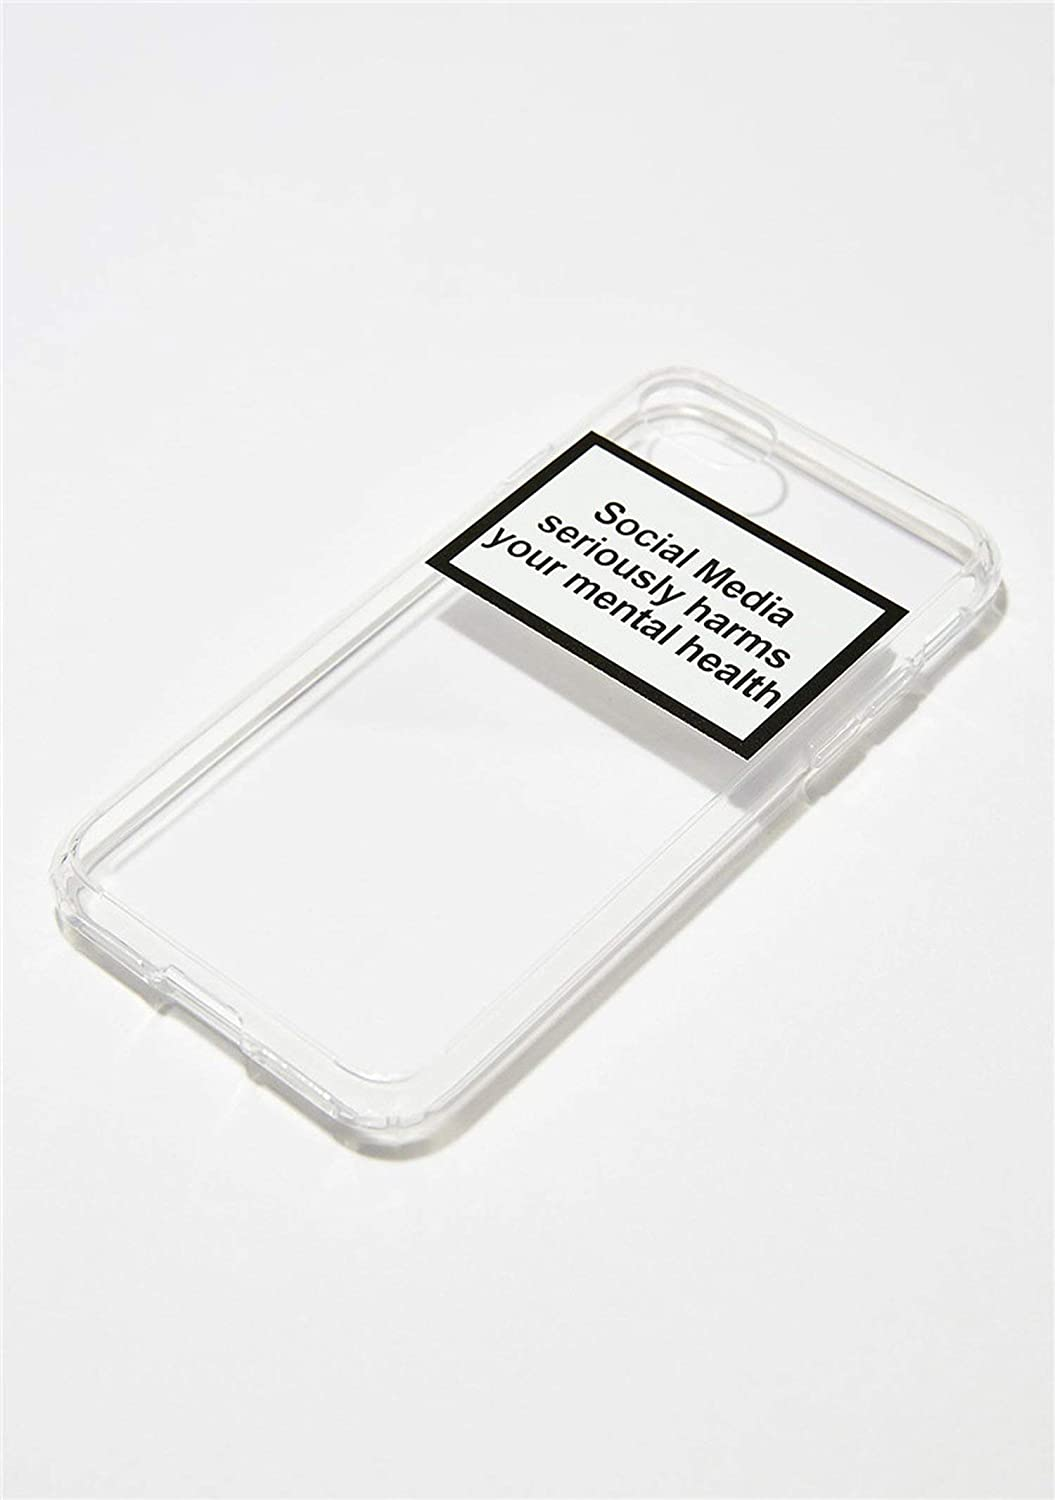 Social Media Seriously Harms Your Mental Health Phone case for iPhone X XR XS MAX 8 7 6 6s Plus Soft Silicone Back Cover Capa,190011,for iPhone 8